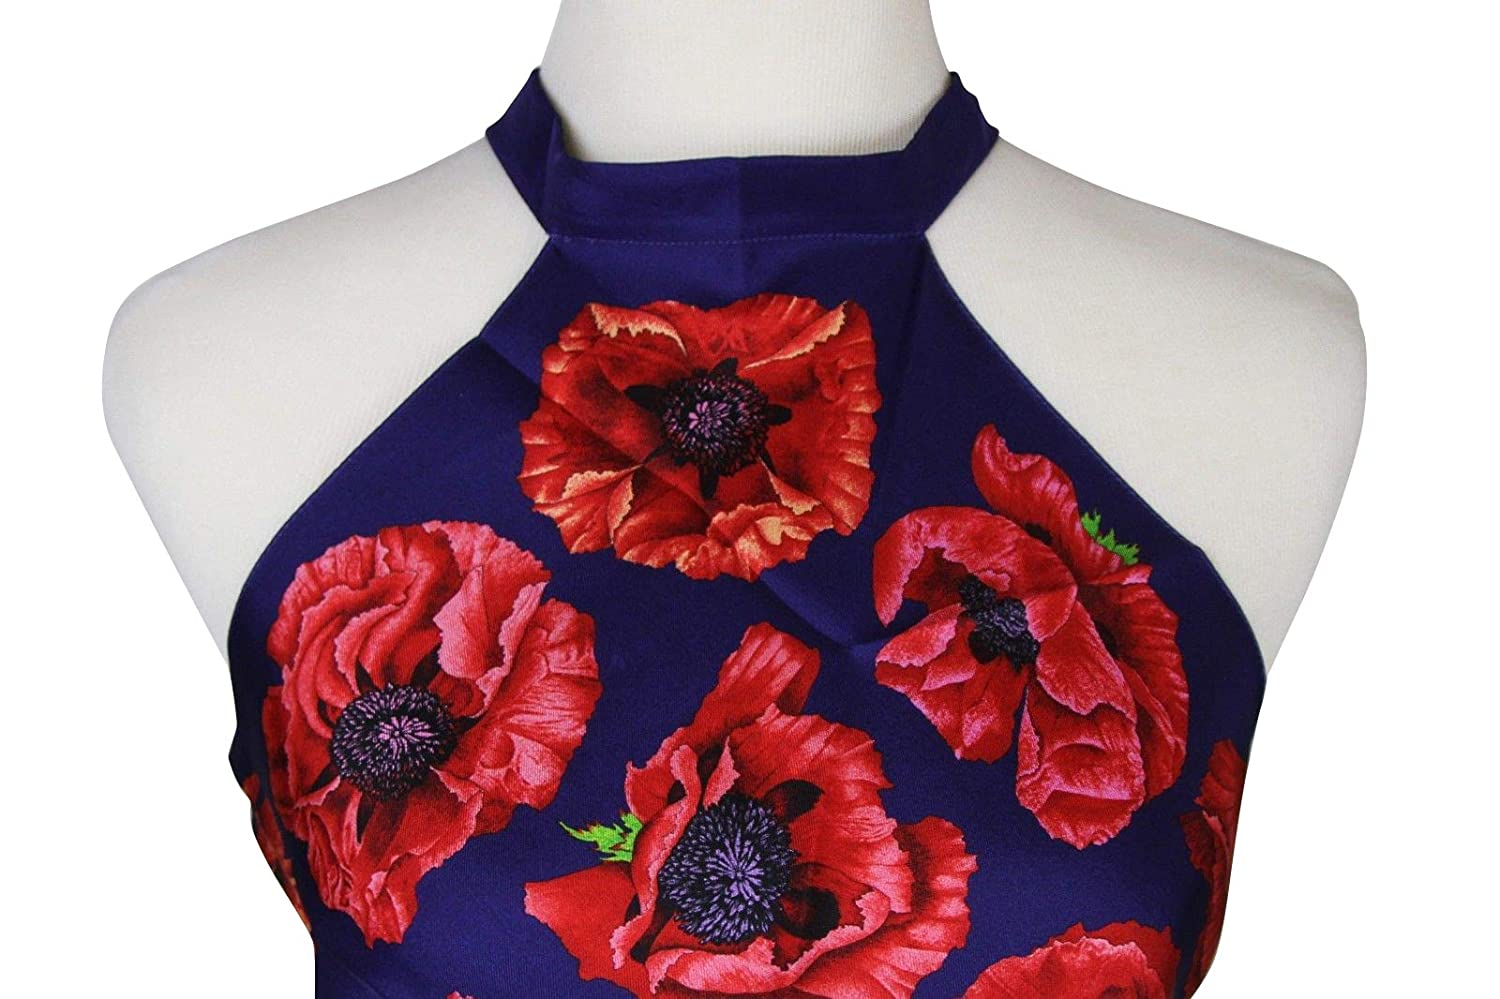 33928e9af Gucci Floral Scarf Blue/Red Poppy Silk Halter Top 327378 4574 at Amazon  Women's Clothing store: